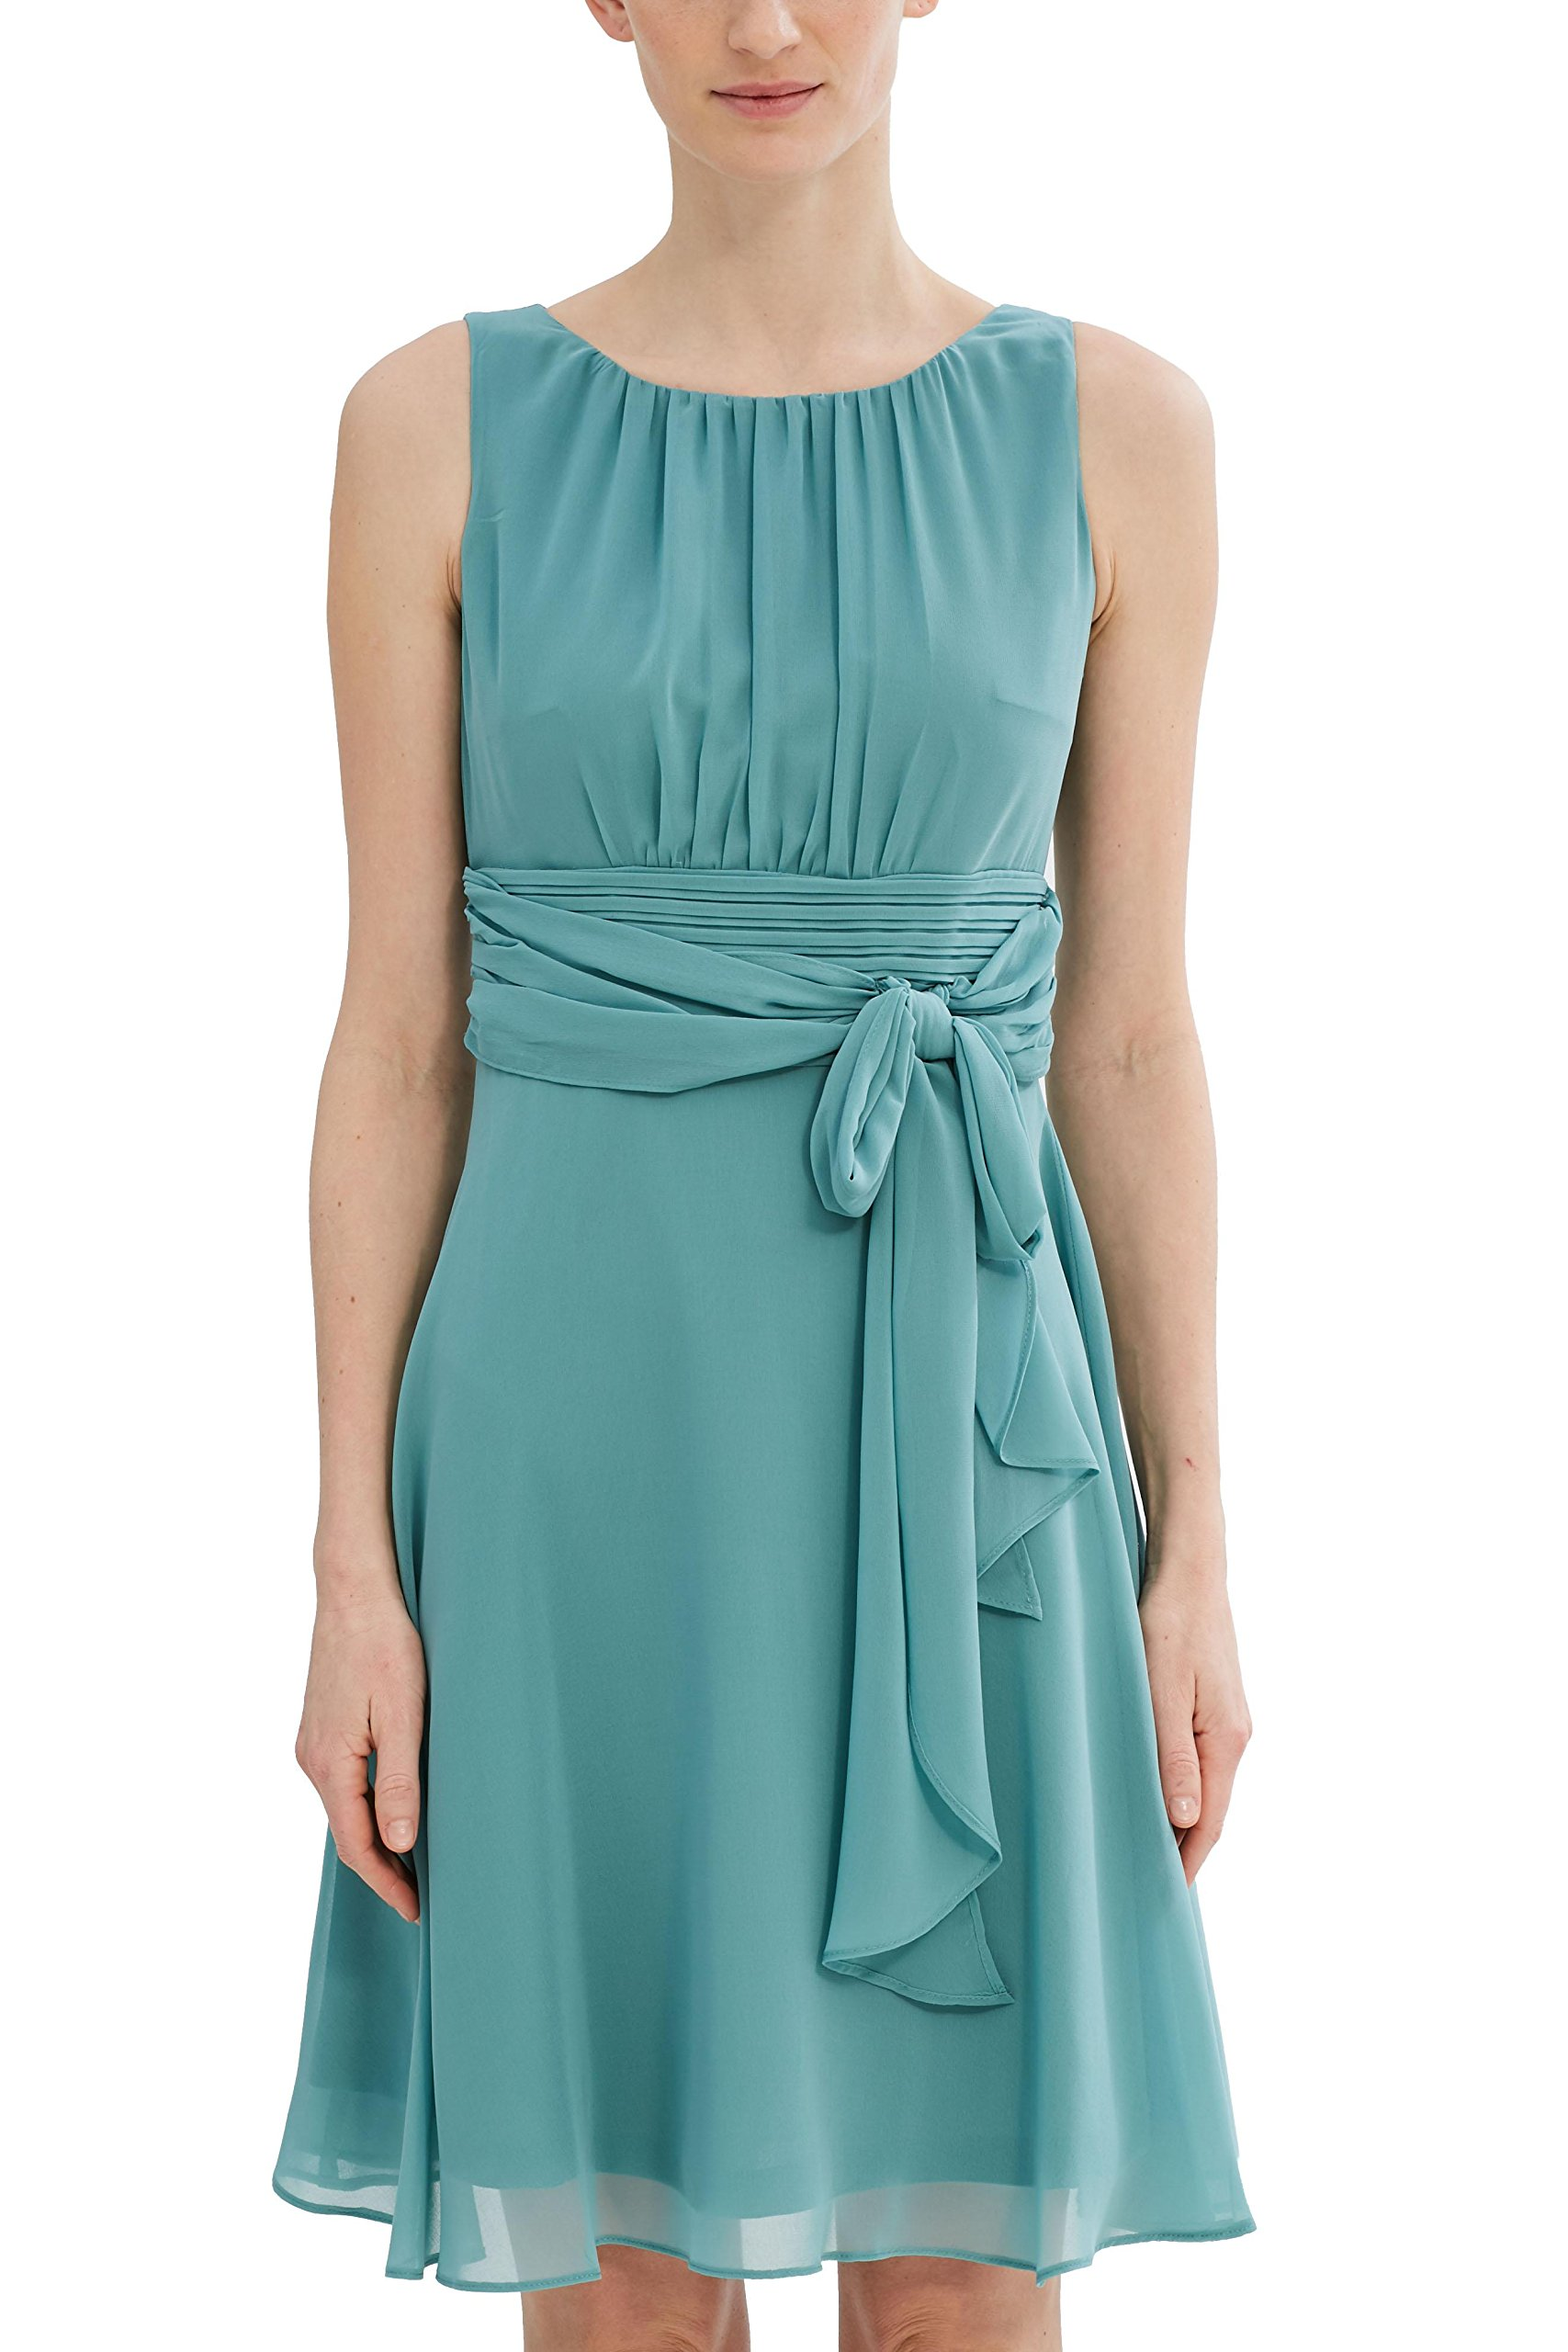 Esprit Collection 027eo1e005Robe Fabricant42 FemmeVertdusty GreenFr44taille vm8nO0wN